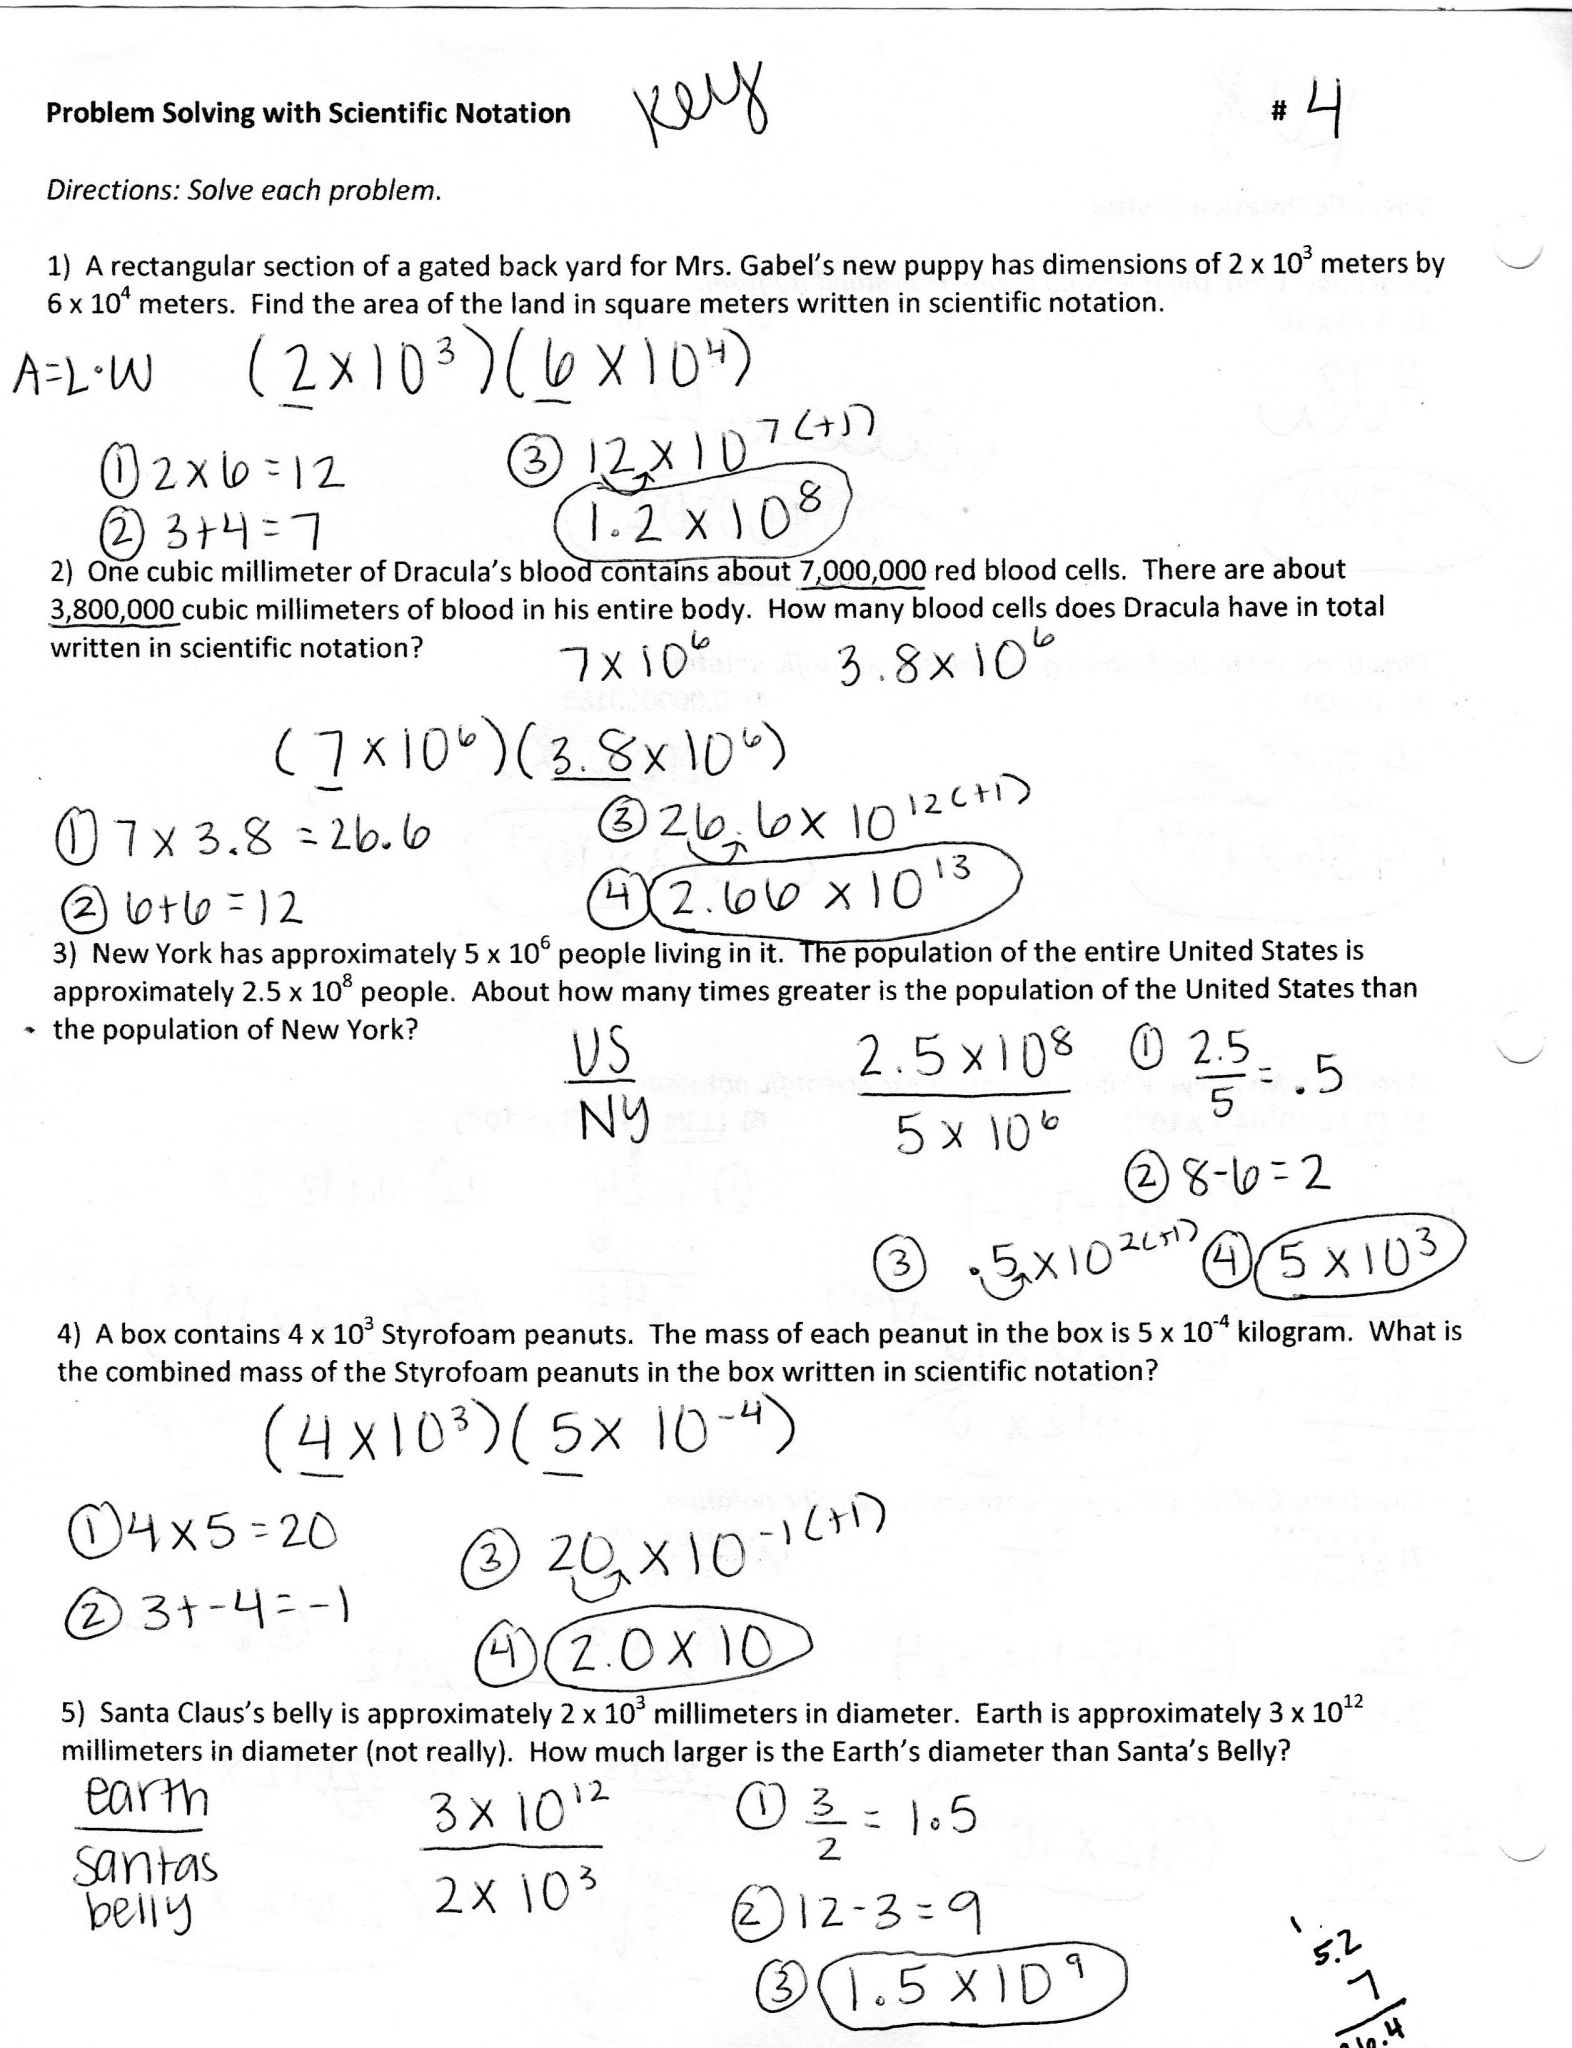 Scientific Notation Word Problems Worksheet